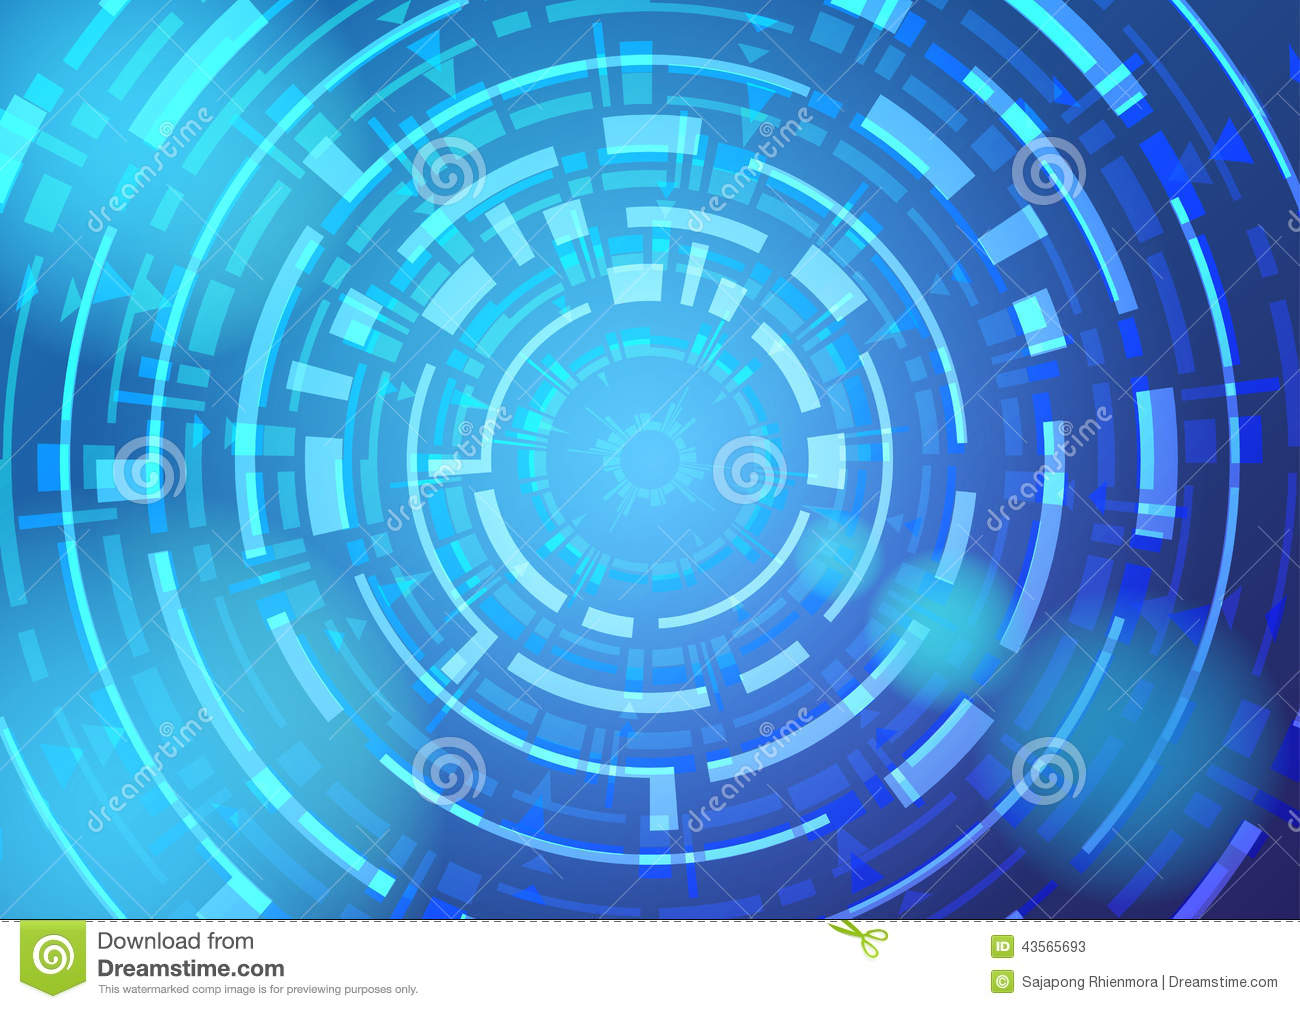 Technology Background With Circular Mesh: Abstract Wallpaper With A Circular Modern Shape. Stock